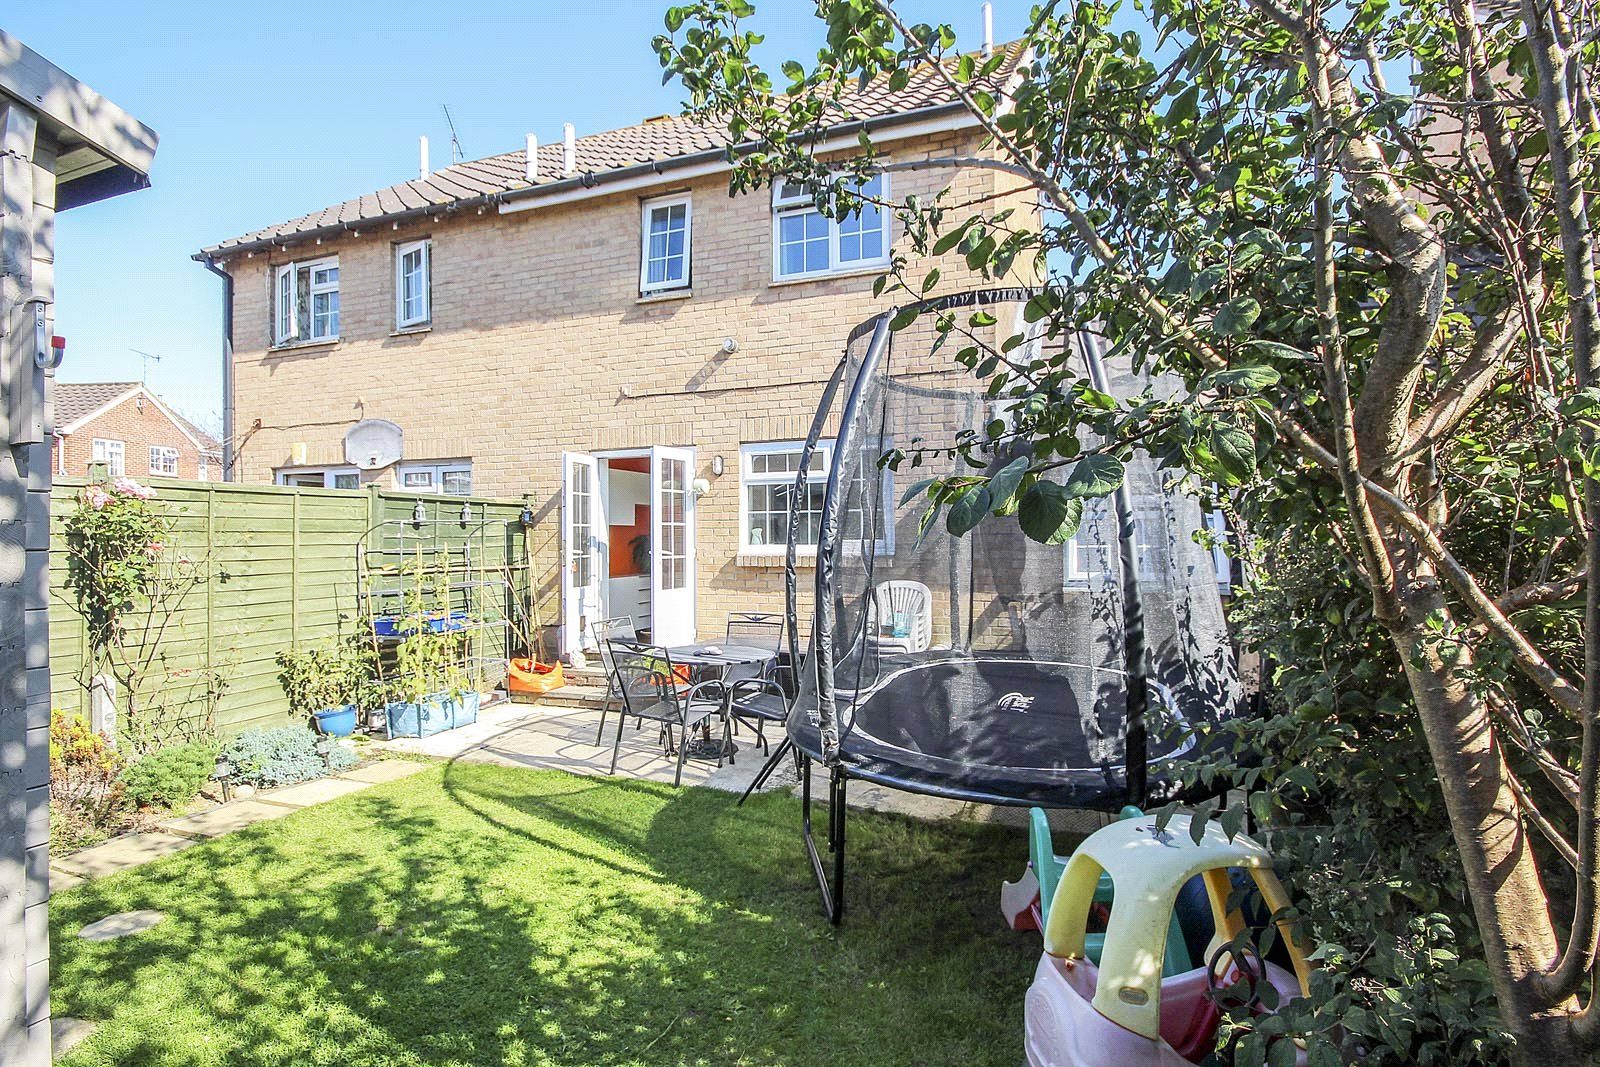 3 bed house for sale in Littlehampton, BN17 6RJ  - Property Image 10